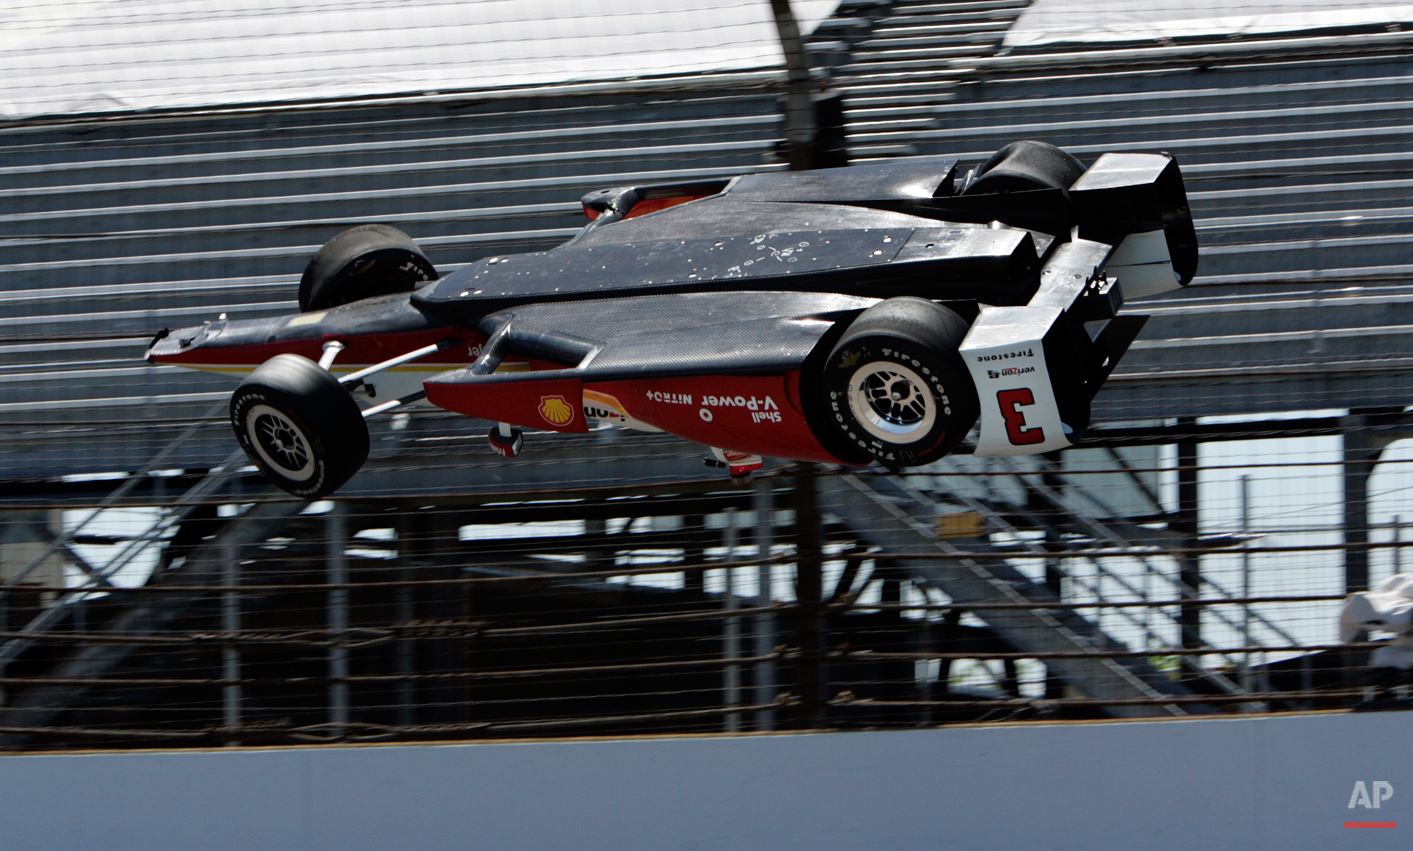 The car driven by Helio Castroneves, of Brazil, is airborne after hitting the wall in the first turn during practice for the Indianapolis 500 auto race at Indianapolis Motor Speedway in Indianapolis, Wednesday, May 13, 2015. (AP Photo/Joe Watts)